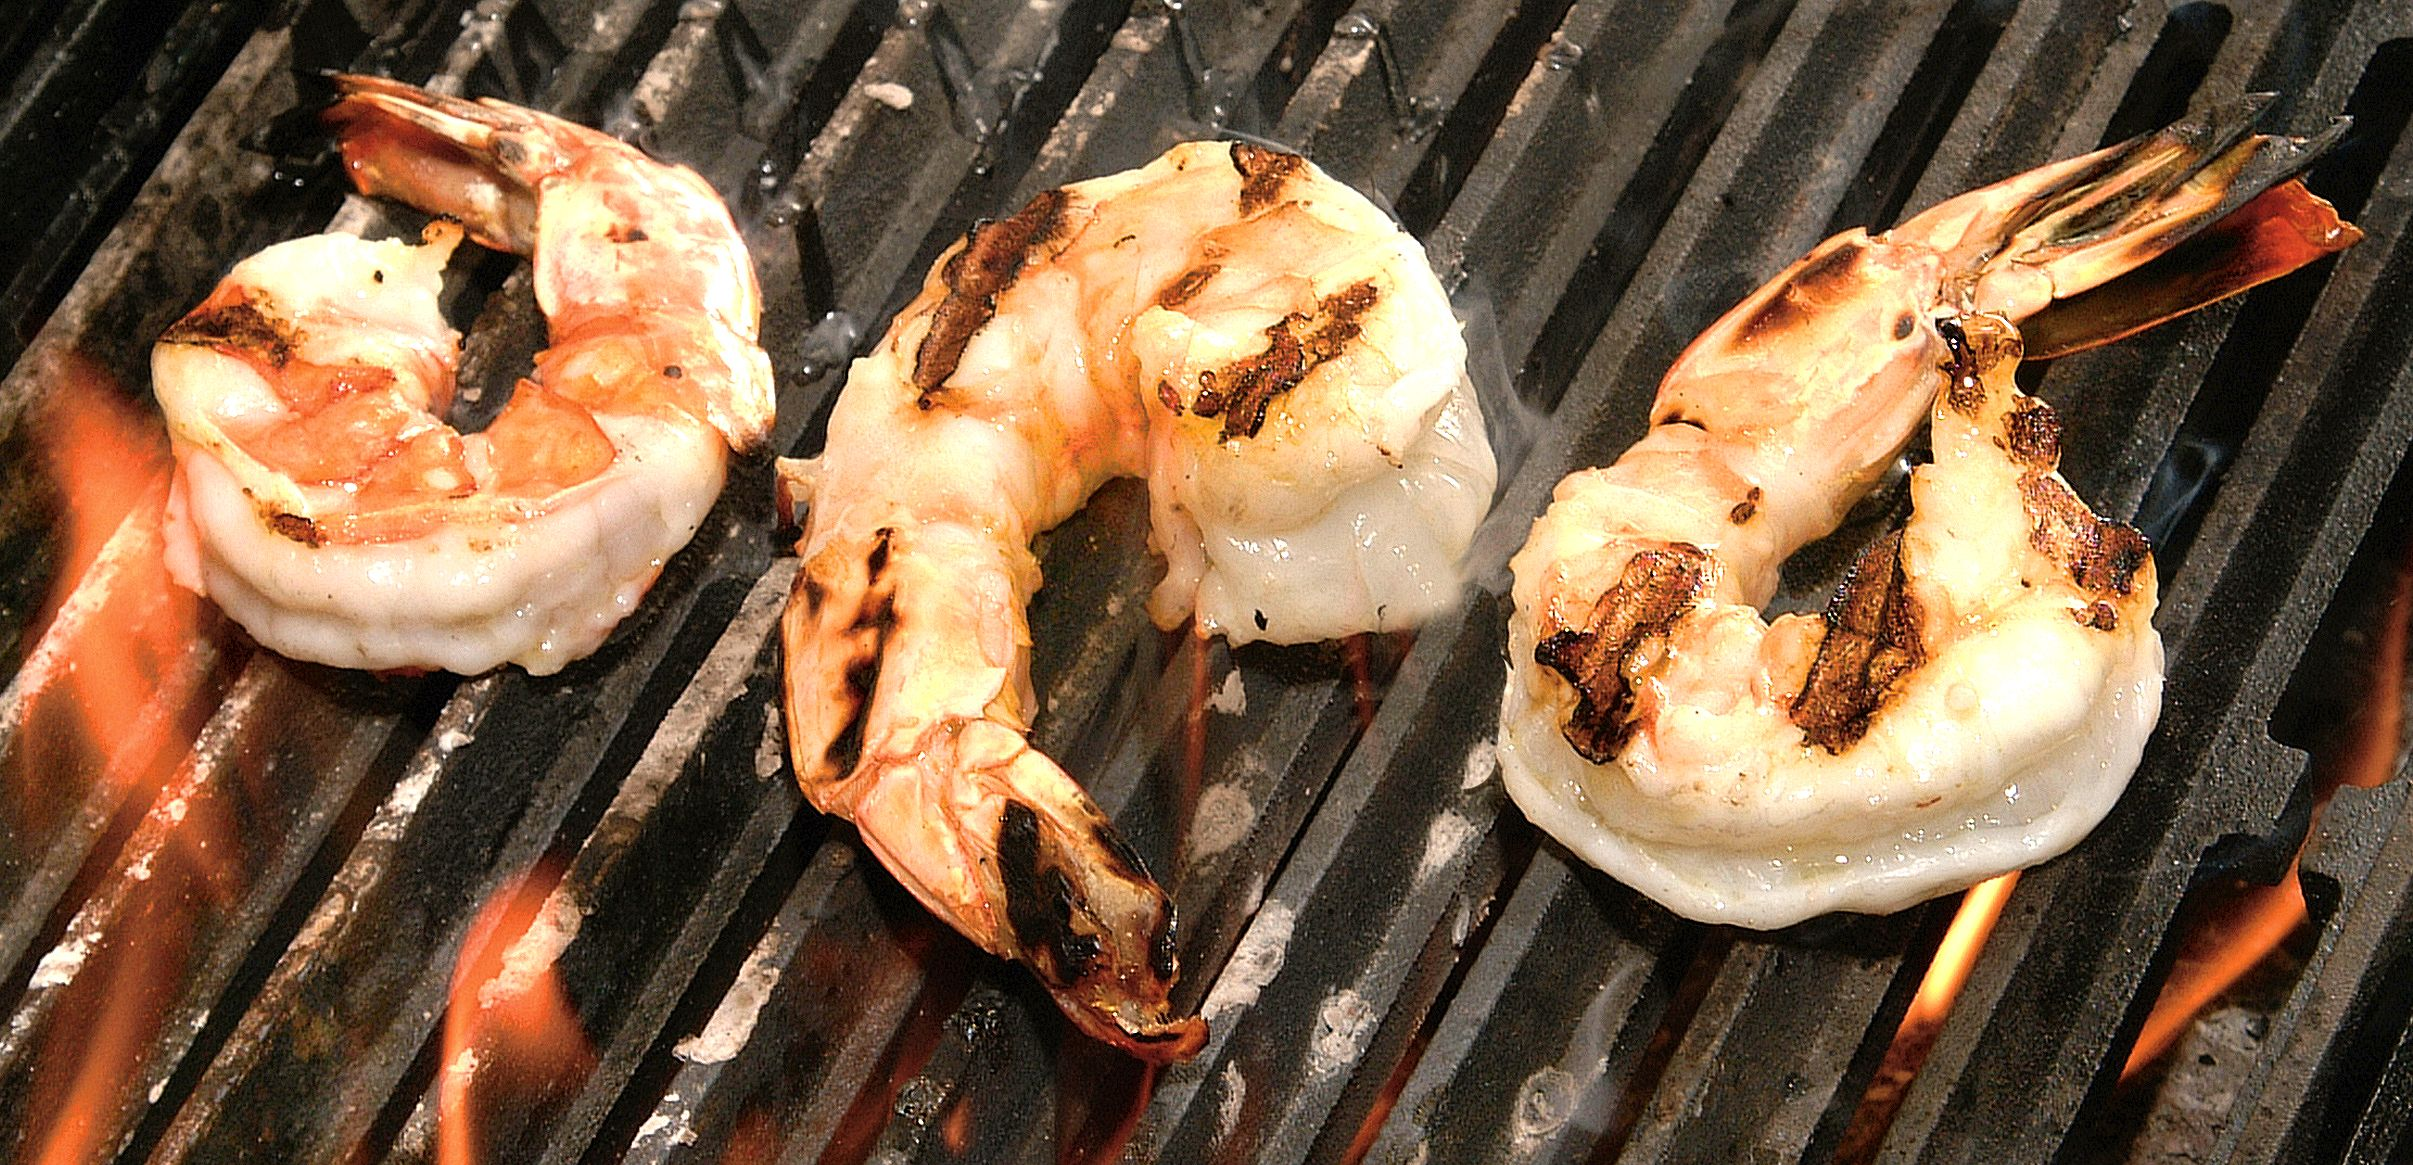 shrimp-on-grill.jpg